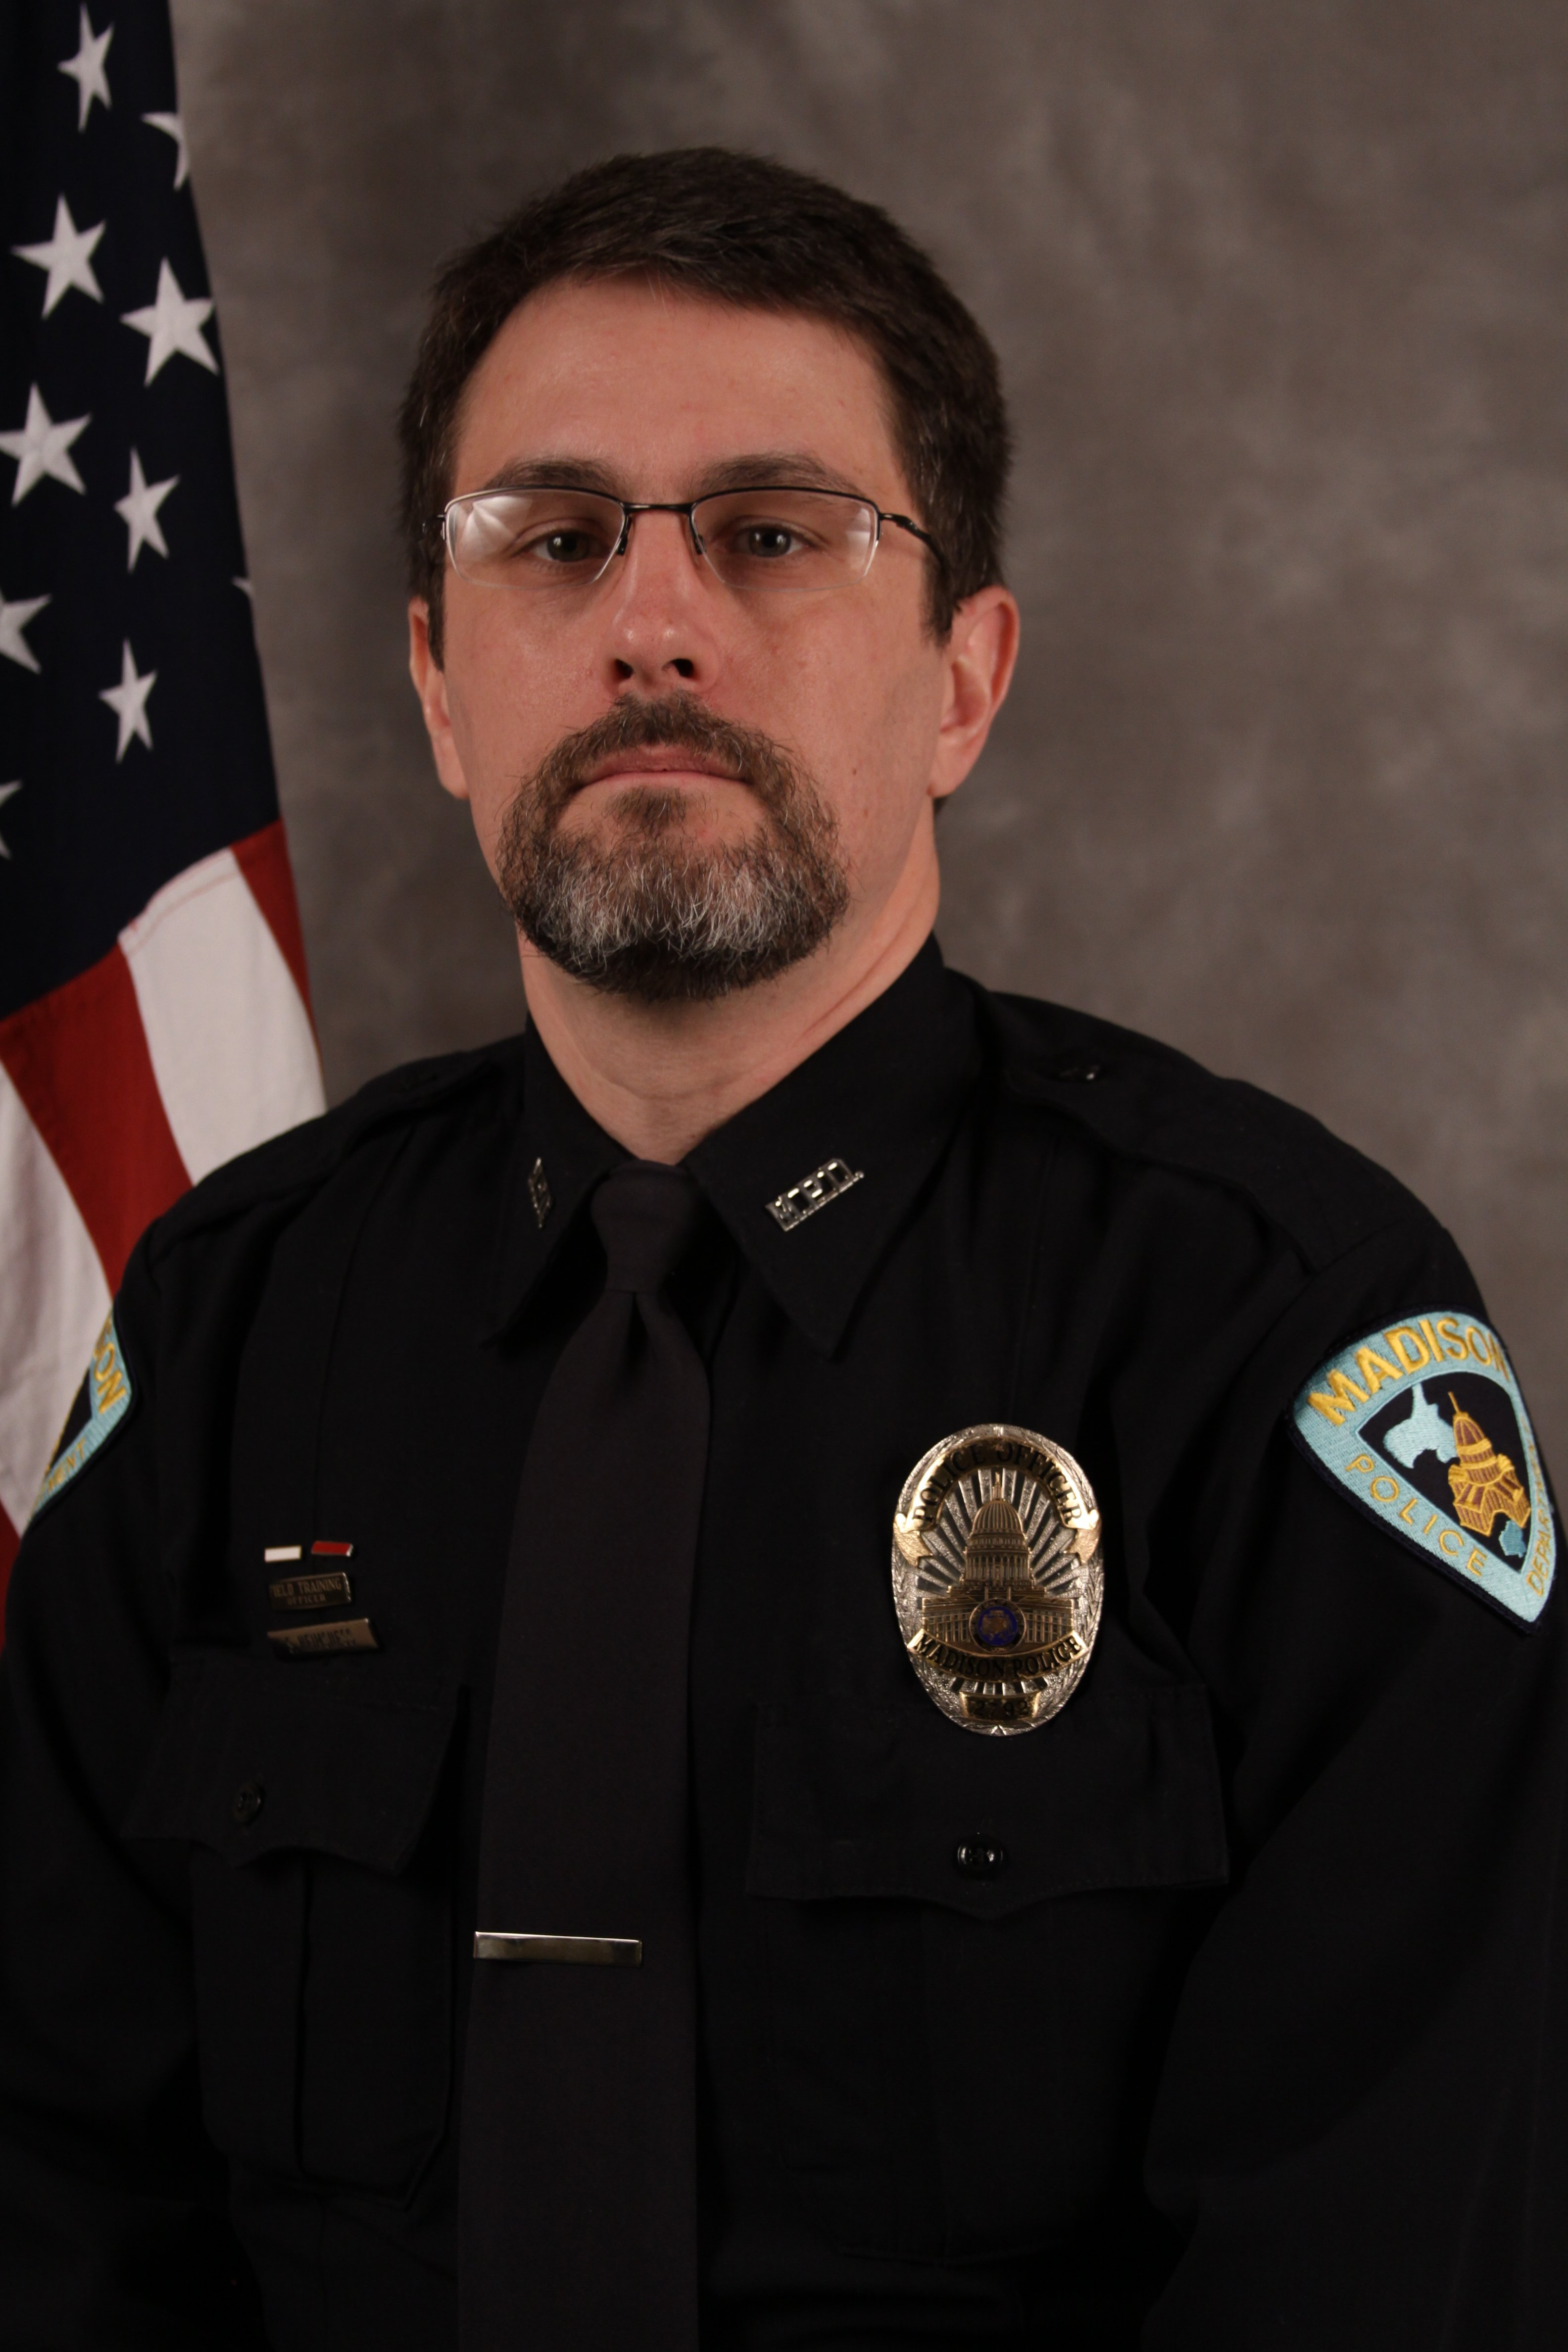 Officer Stephen Heimsness